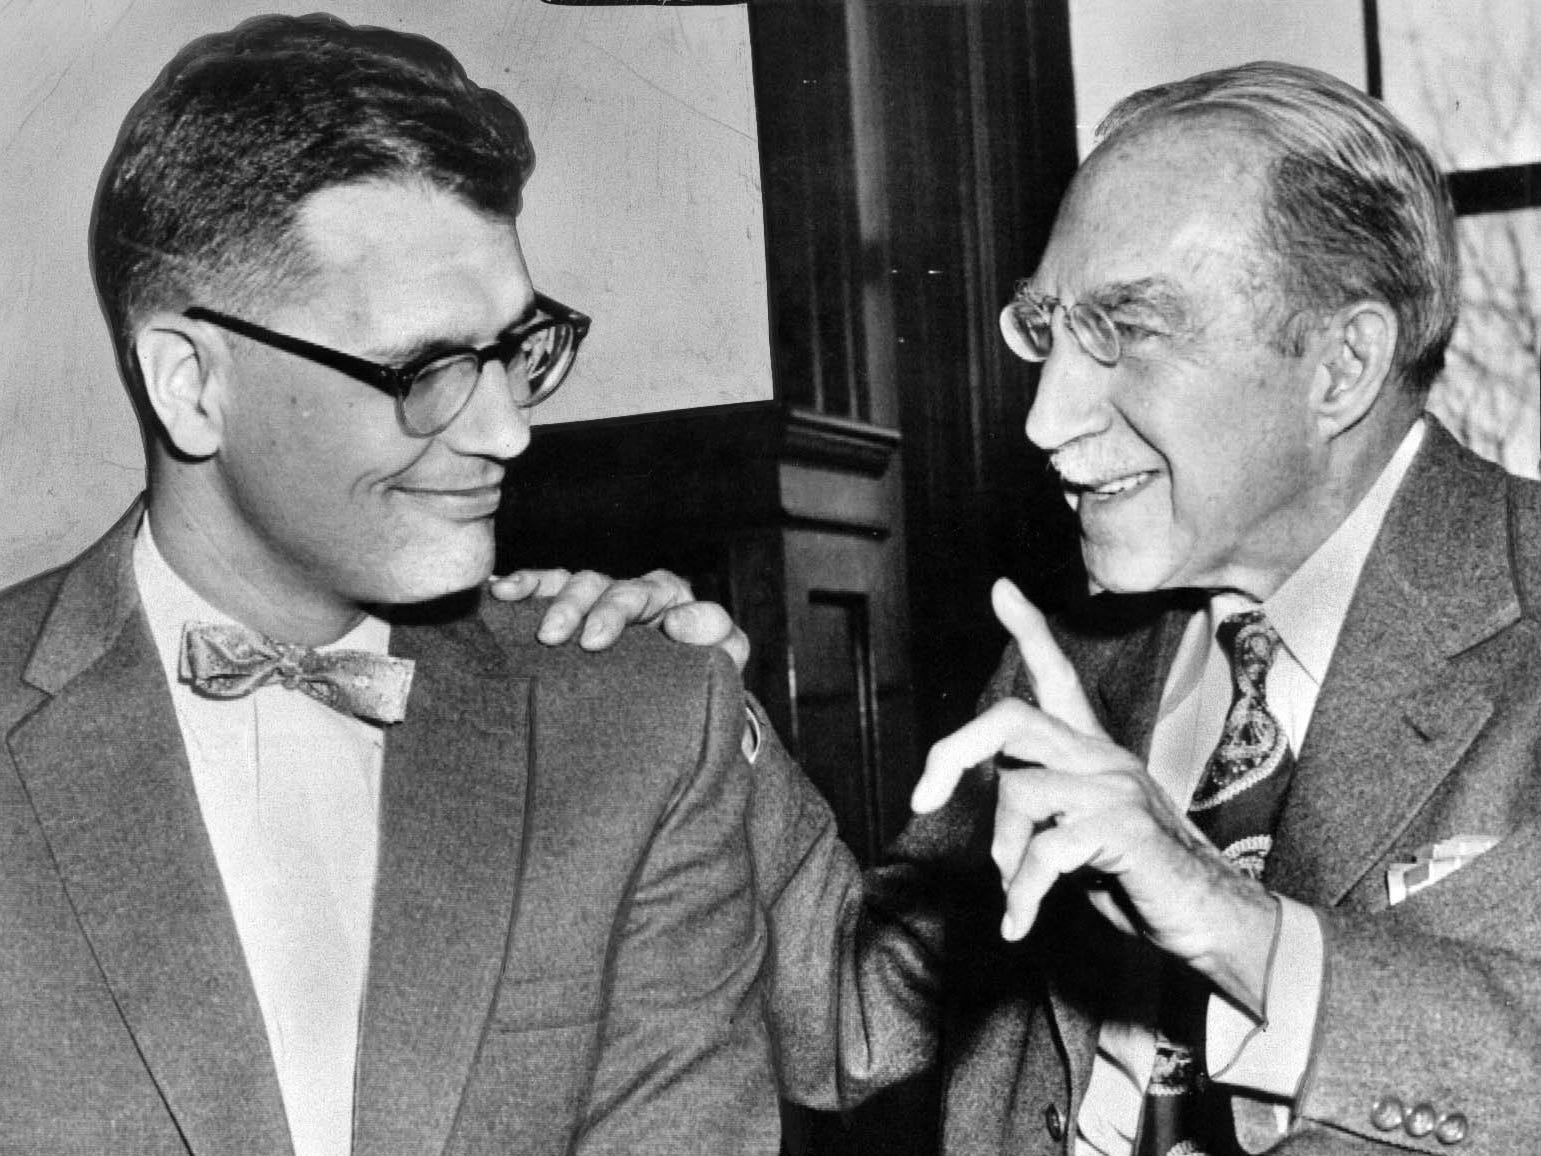 New U.S. Rep. John Dingell Jr. alks with Sen. Theodore Green of Rhode Island in 1957.